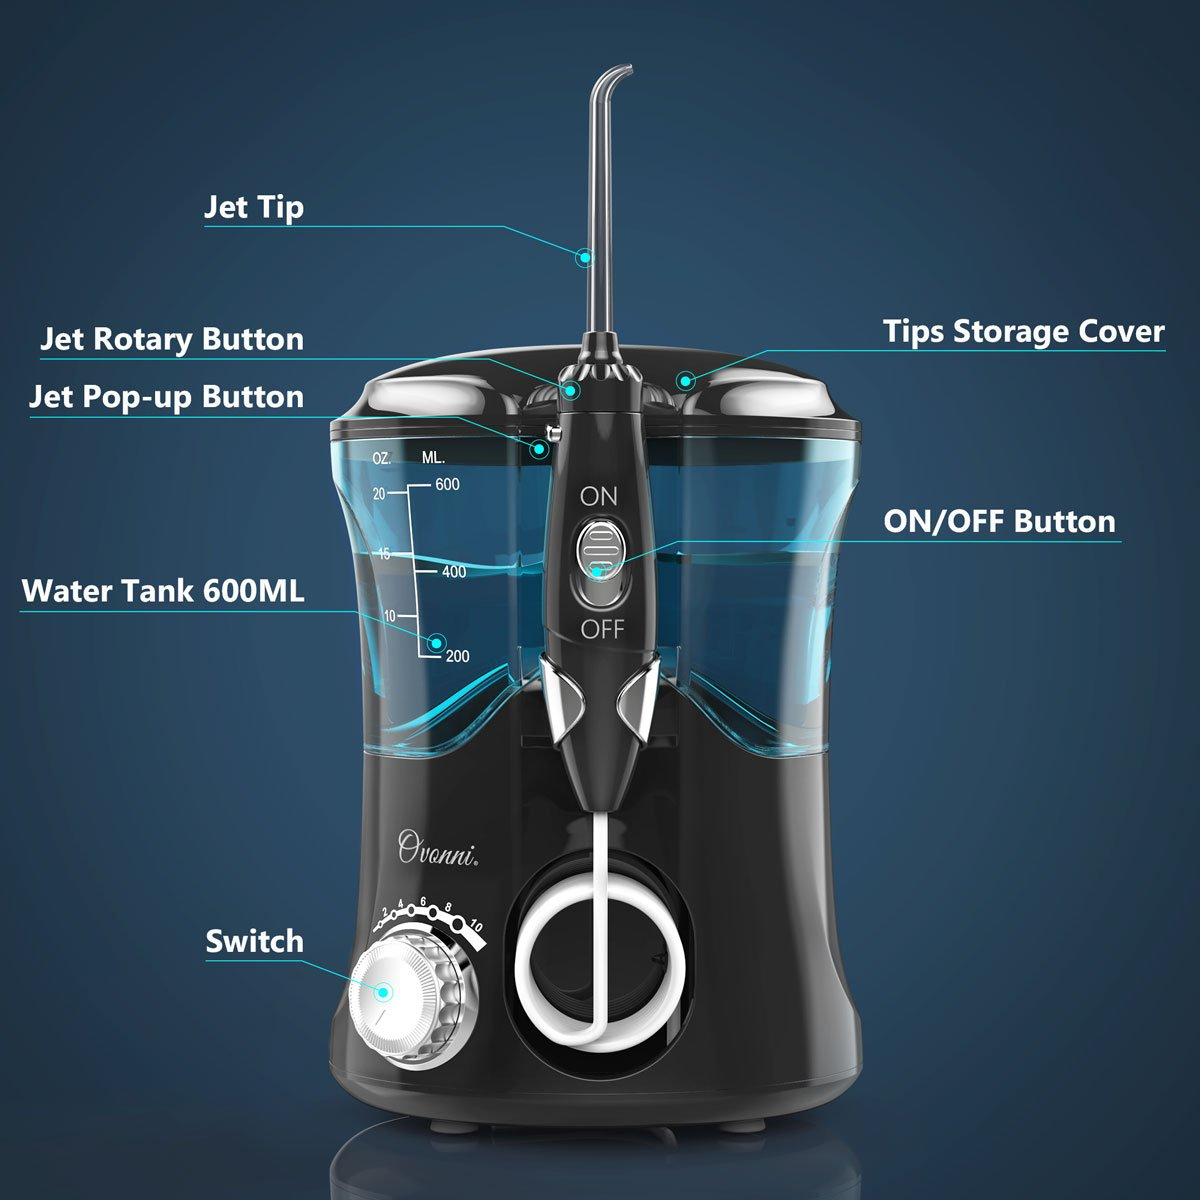 Ovonni Water Flosser - Dental Oral Irrigator with 10 Pressure Settings and 7 Interchangeable Jet Tips for Teeth, Braces and Bridges - High Capacity 600ML Water Tank for Whole Family Black